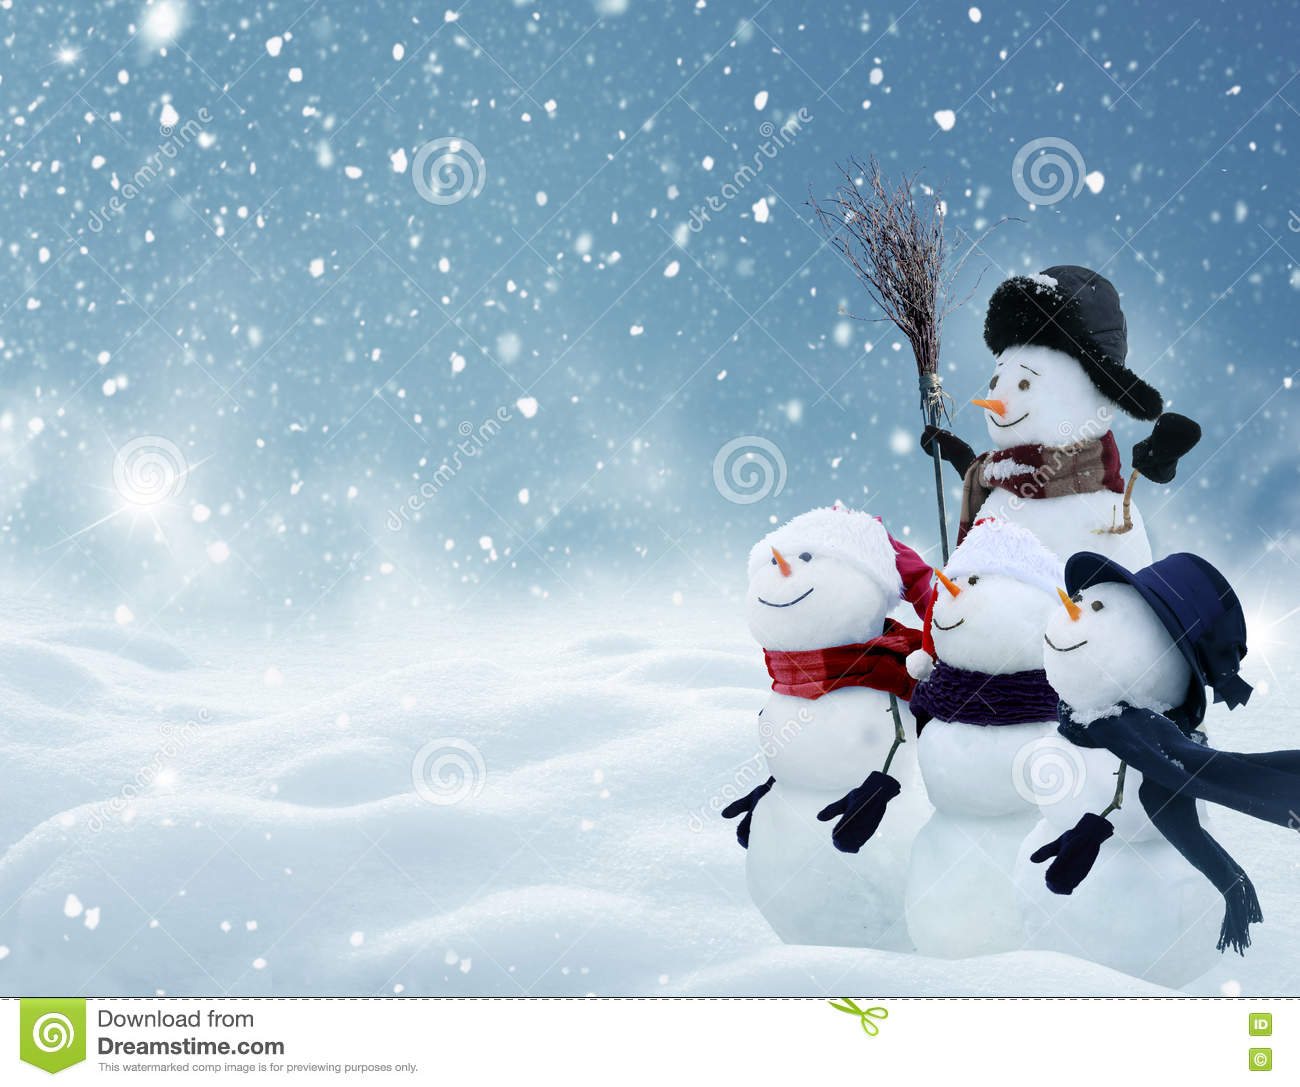 Many snowmen standing in winter Christmas landscape